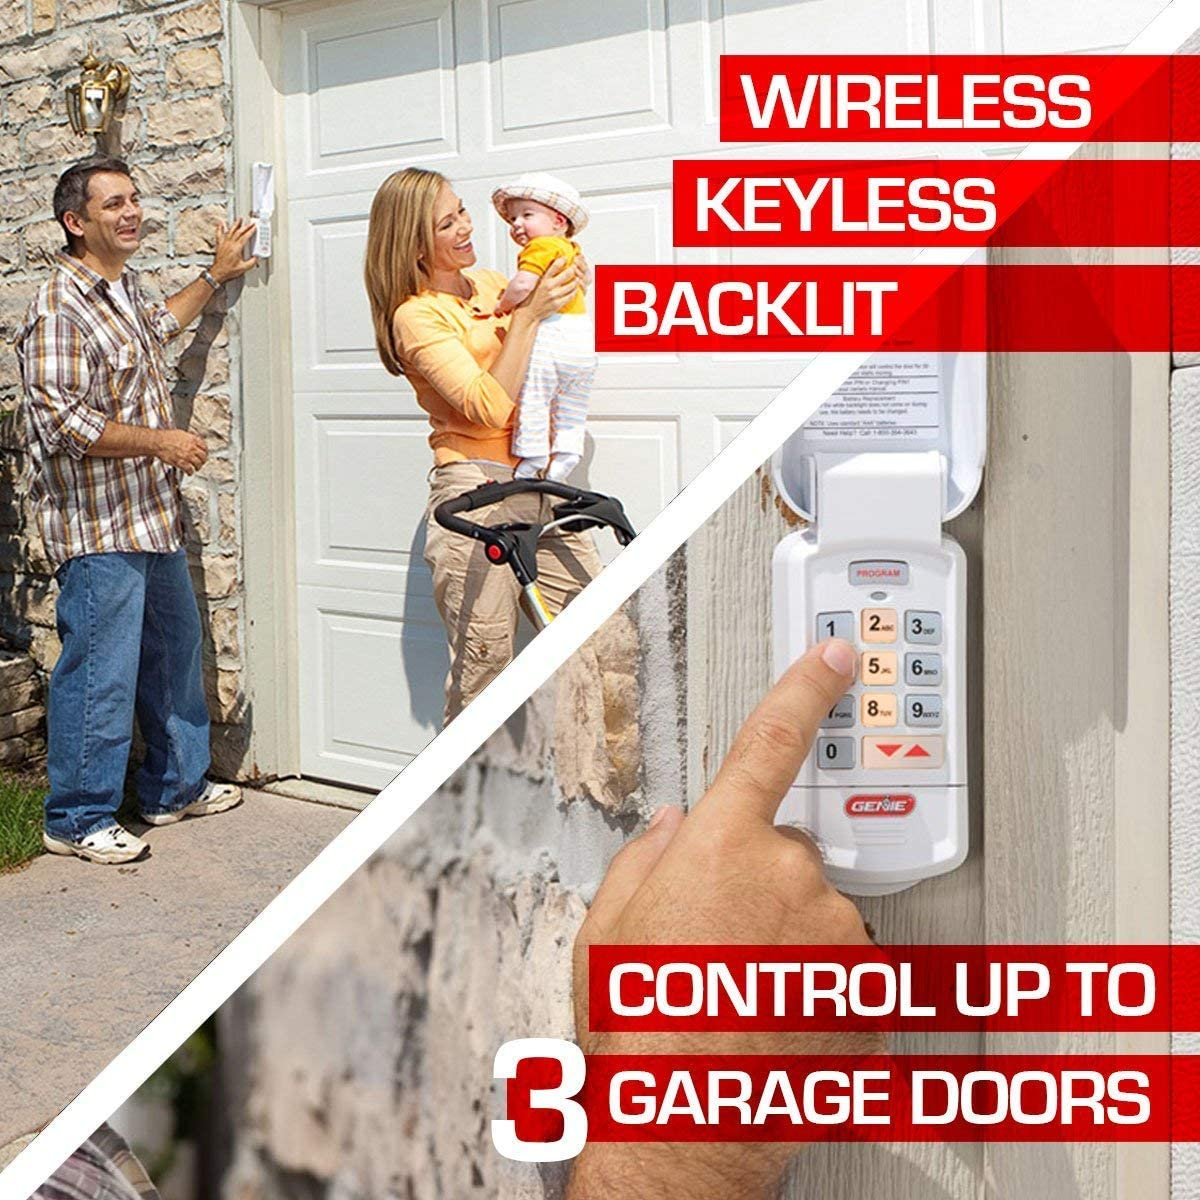 Safe /& Secure Access Easy Entry into The Garage with a PIN Genie Garage Door Opener Wireless Keyless Keypad 2 Pack Model GK-R Compatible with All Genie Intellicode Garage Door Openers